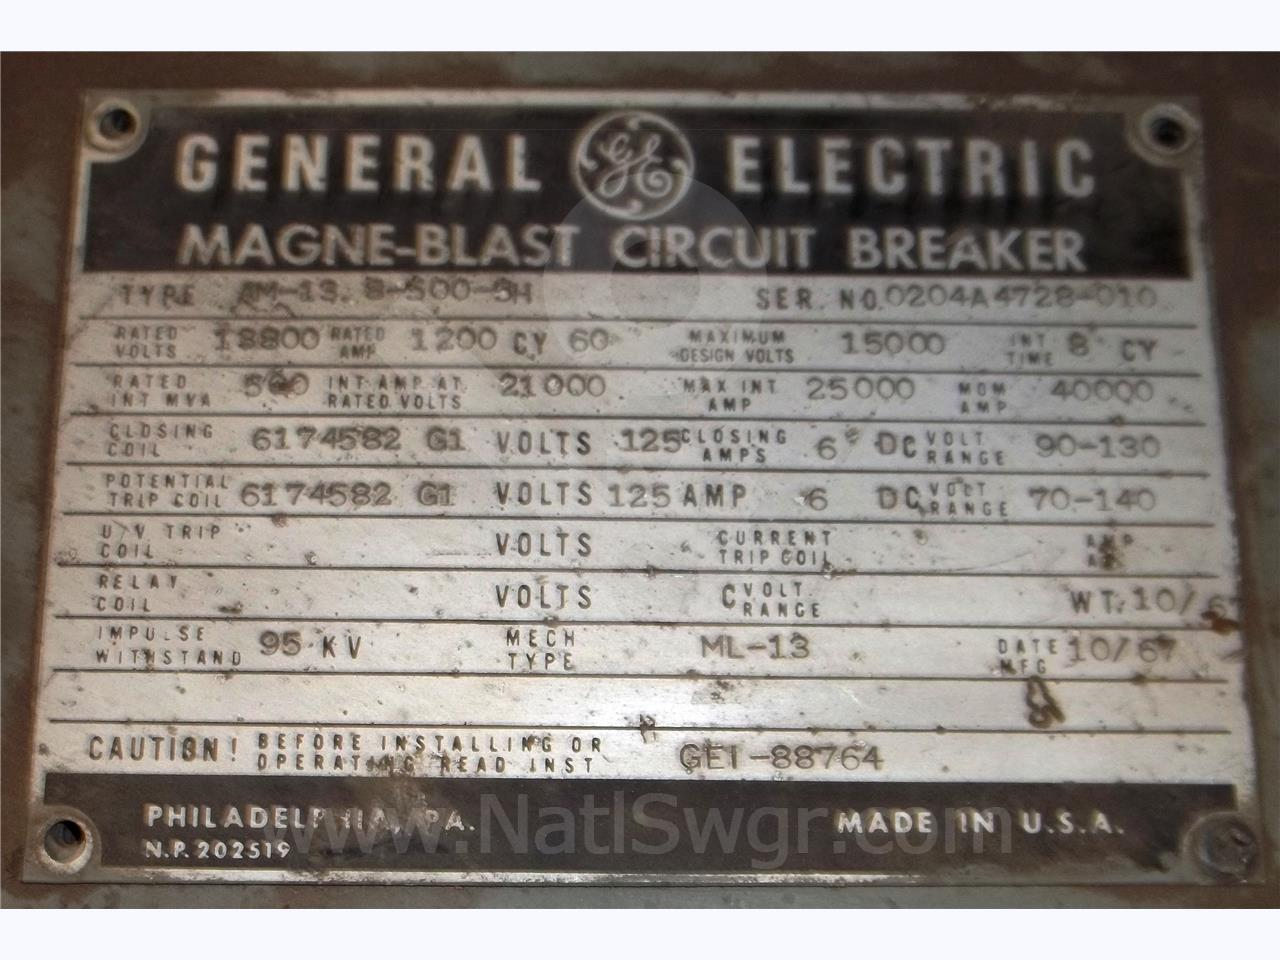 General Electric 1200A GE AM-13.8-500-5H ML-13 (AM 13.8-500)